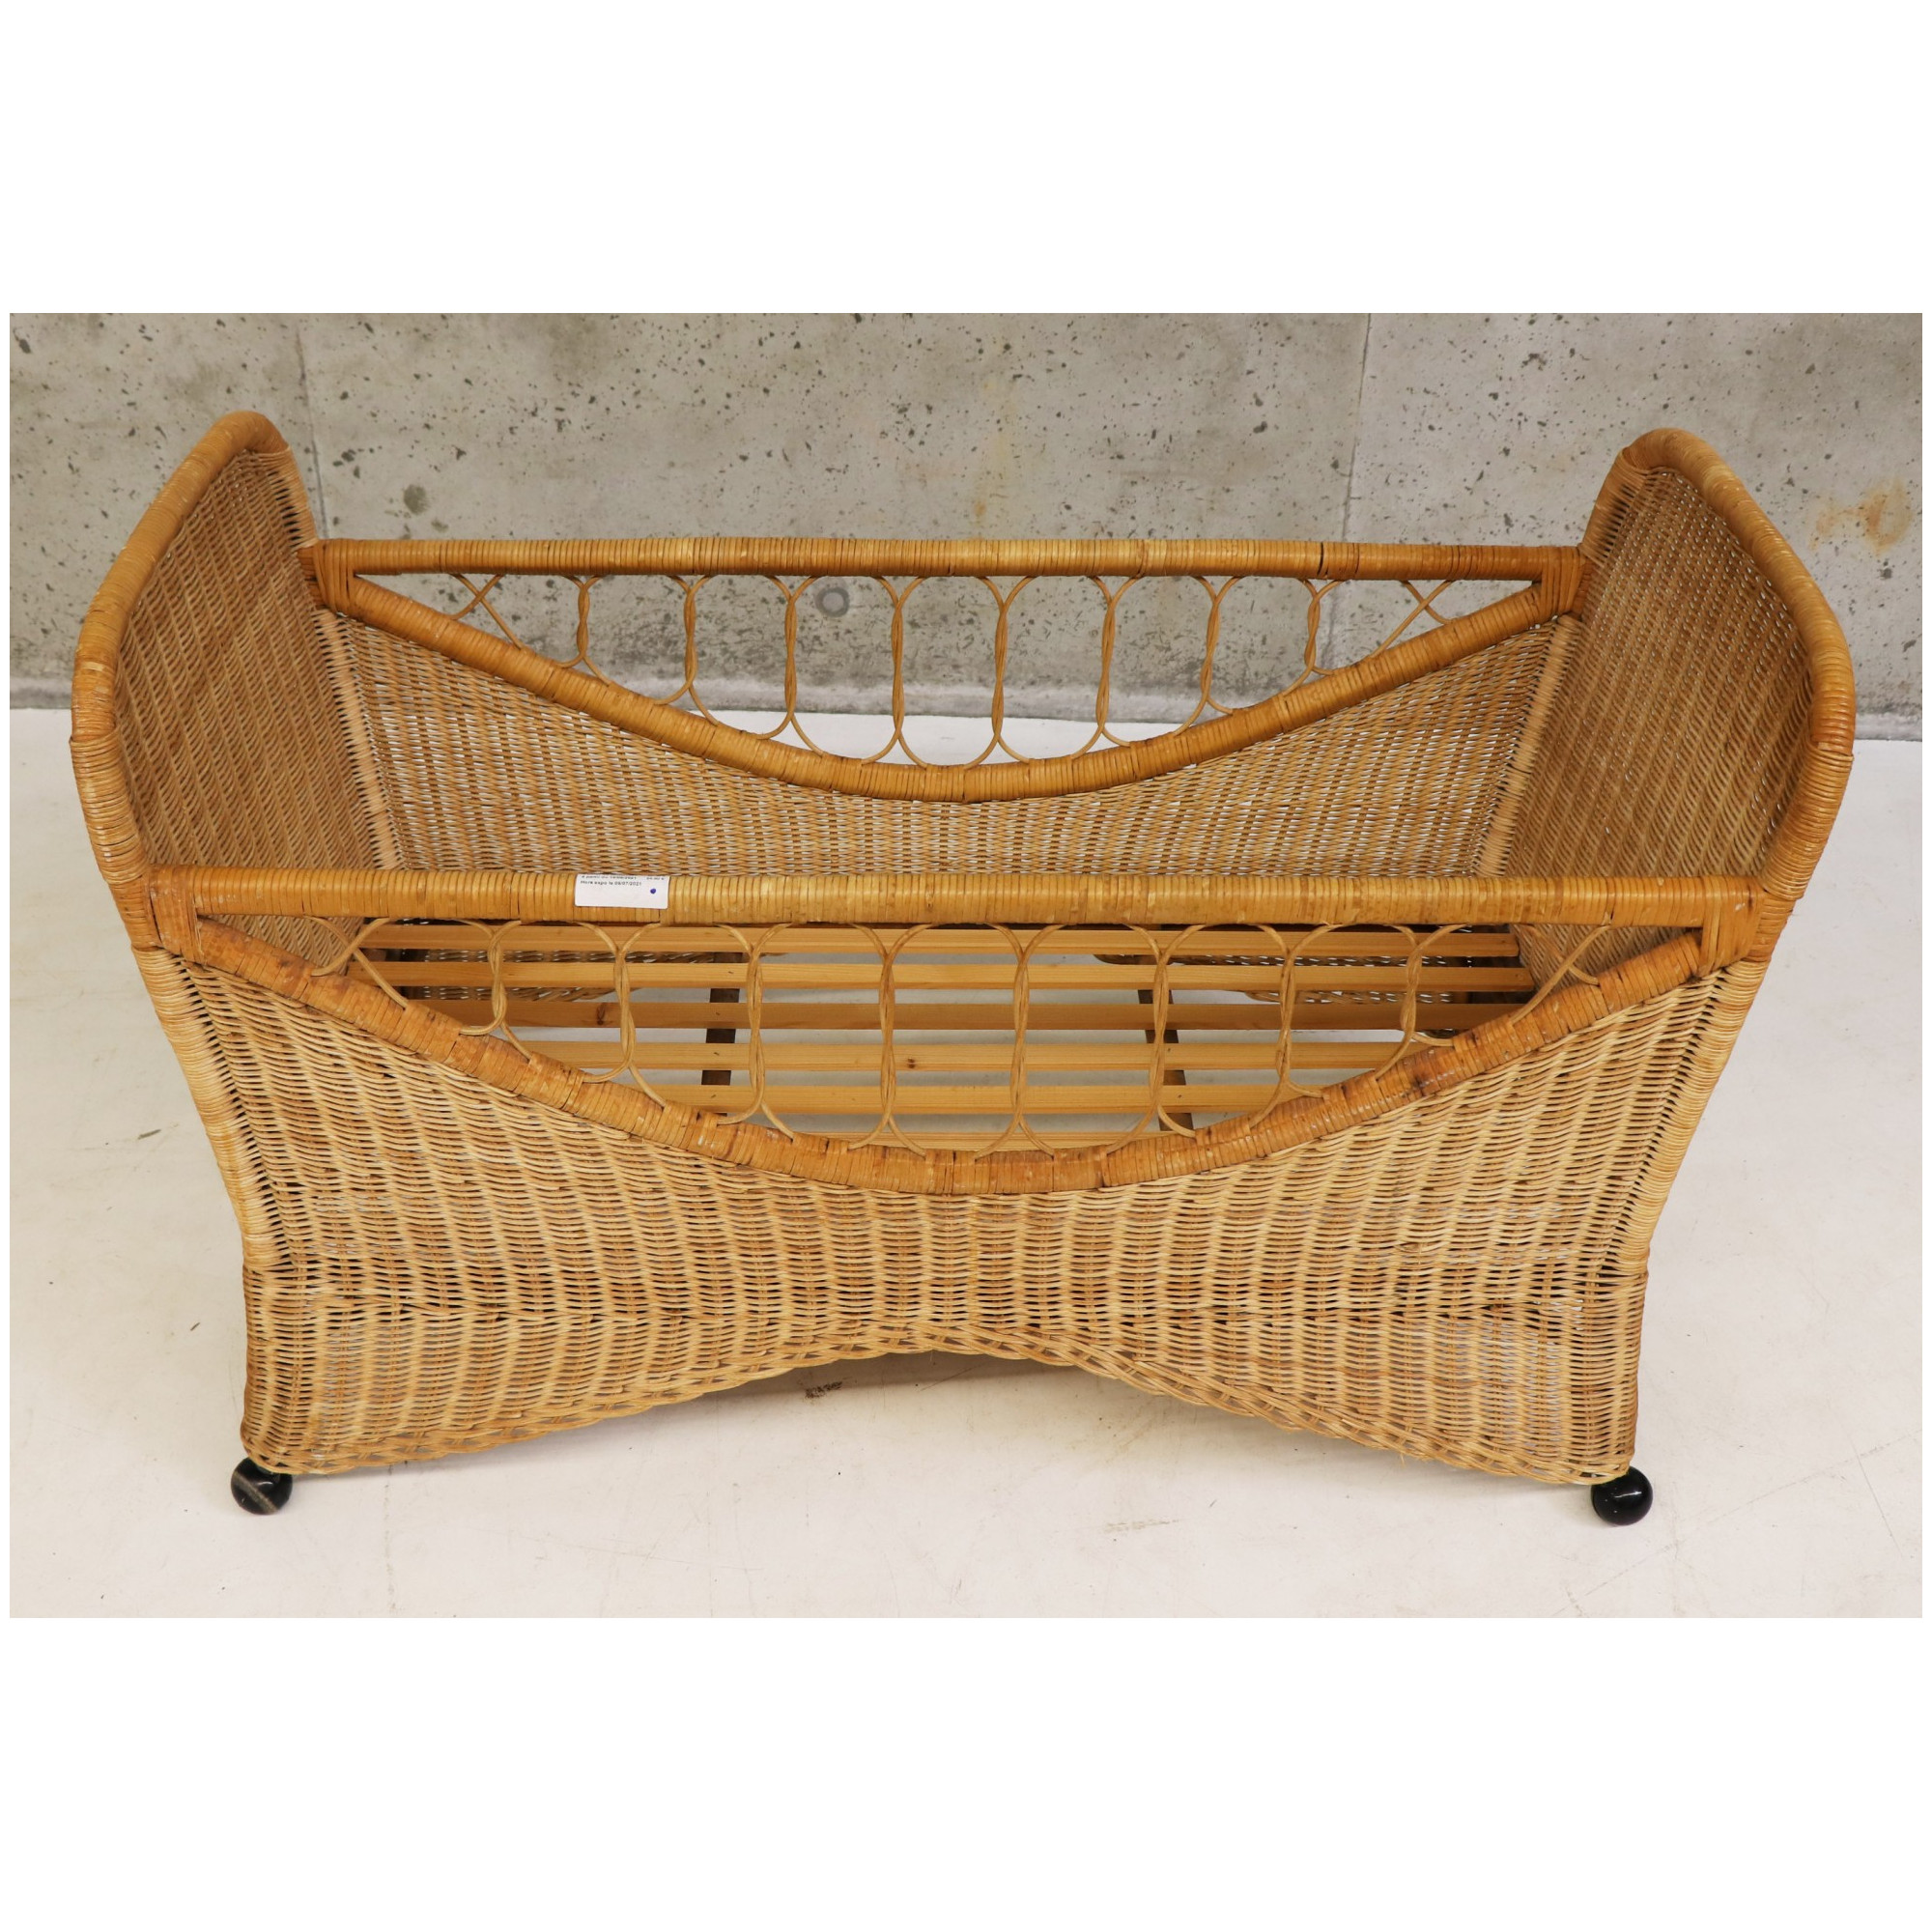 Rattan bed on Wheels